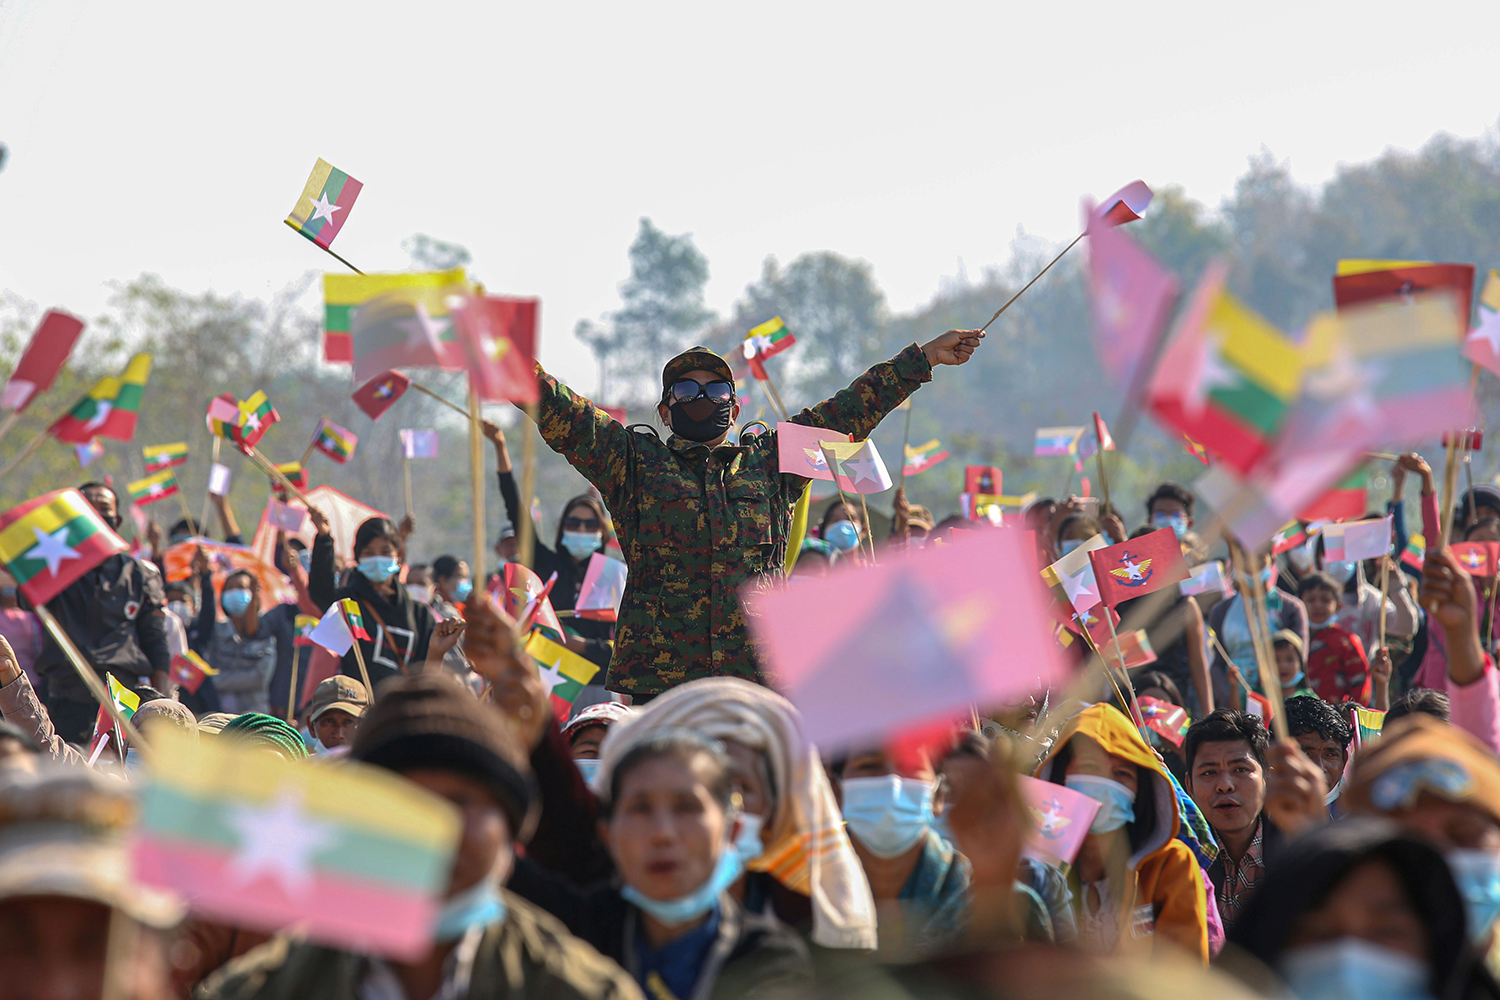 Army supporters waving the armed forces of Burma flag and the national flag participate in a rally in Naypyidaw, Myanmar, on Feb. 4 following a military coup that detained civilian leader Aung San Suu Kyi. STR/AFP via Getty Images